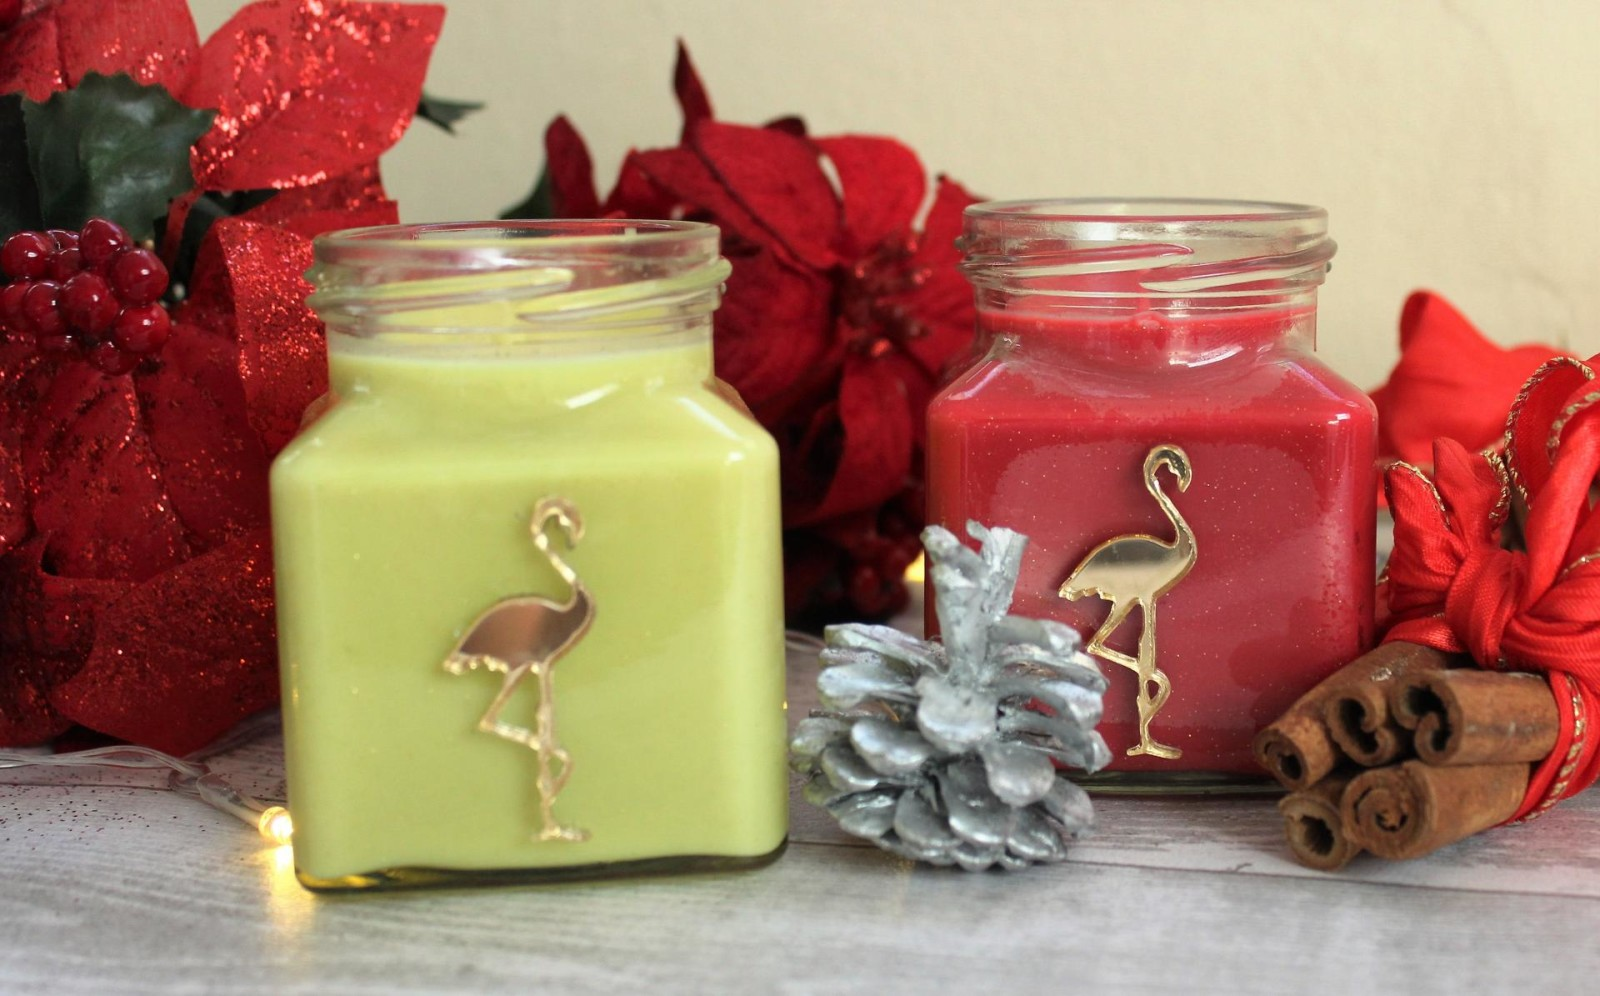 Flamingo Candles Mulled Wine and Berries Cinnamon Stick